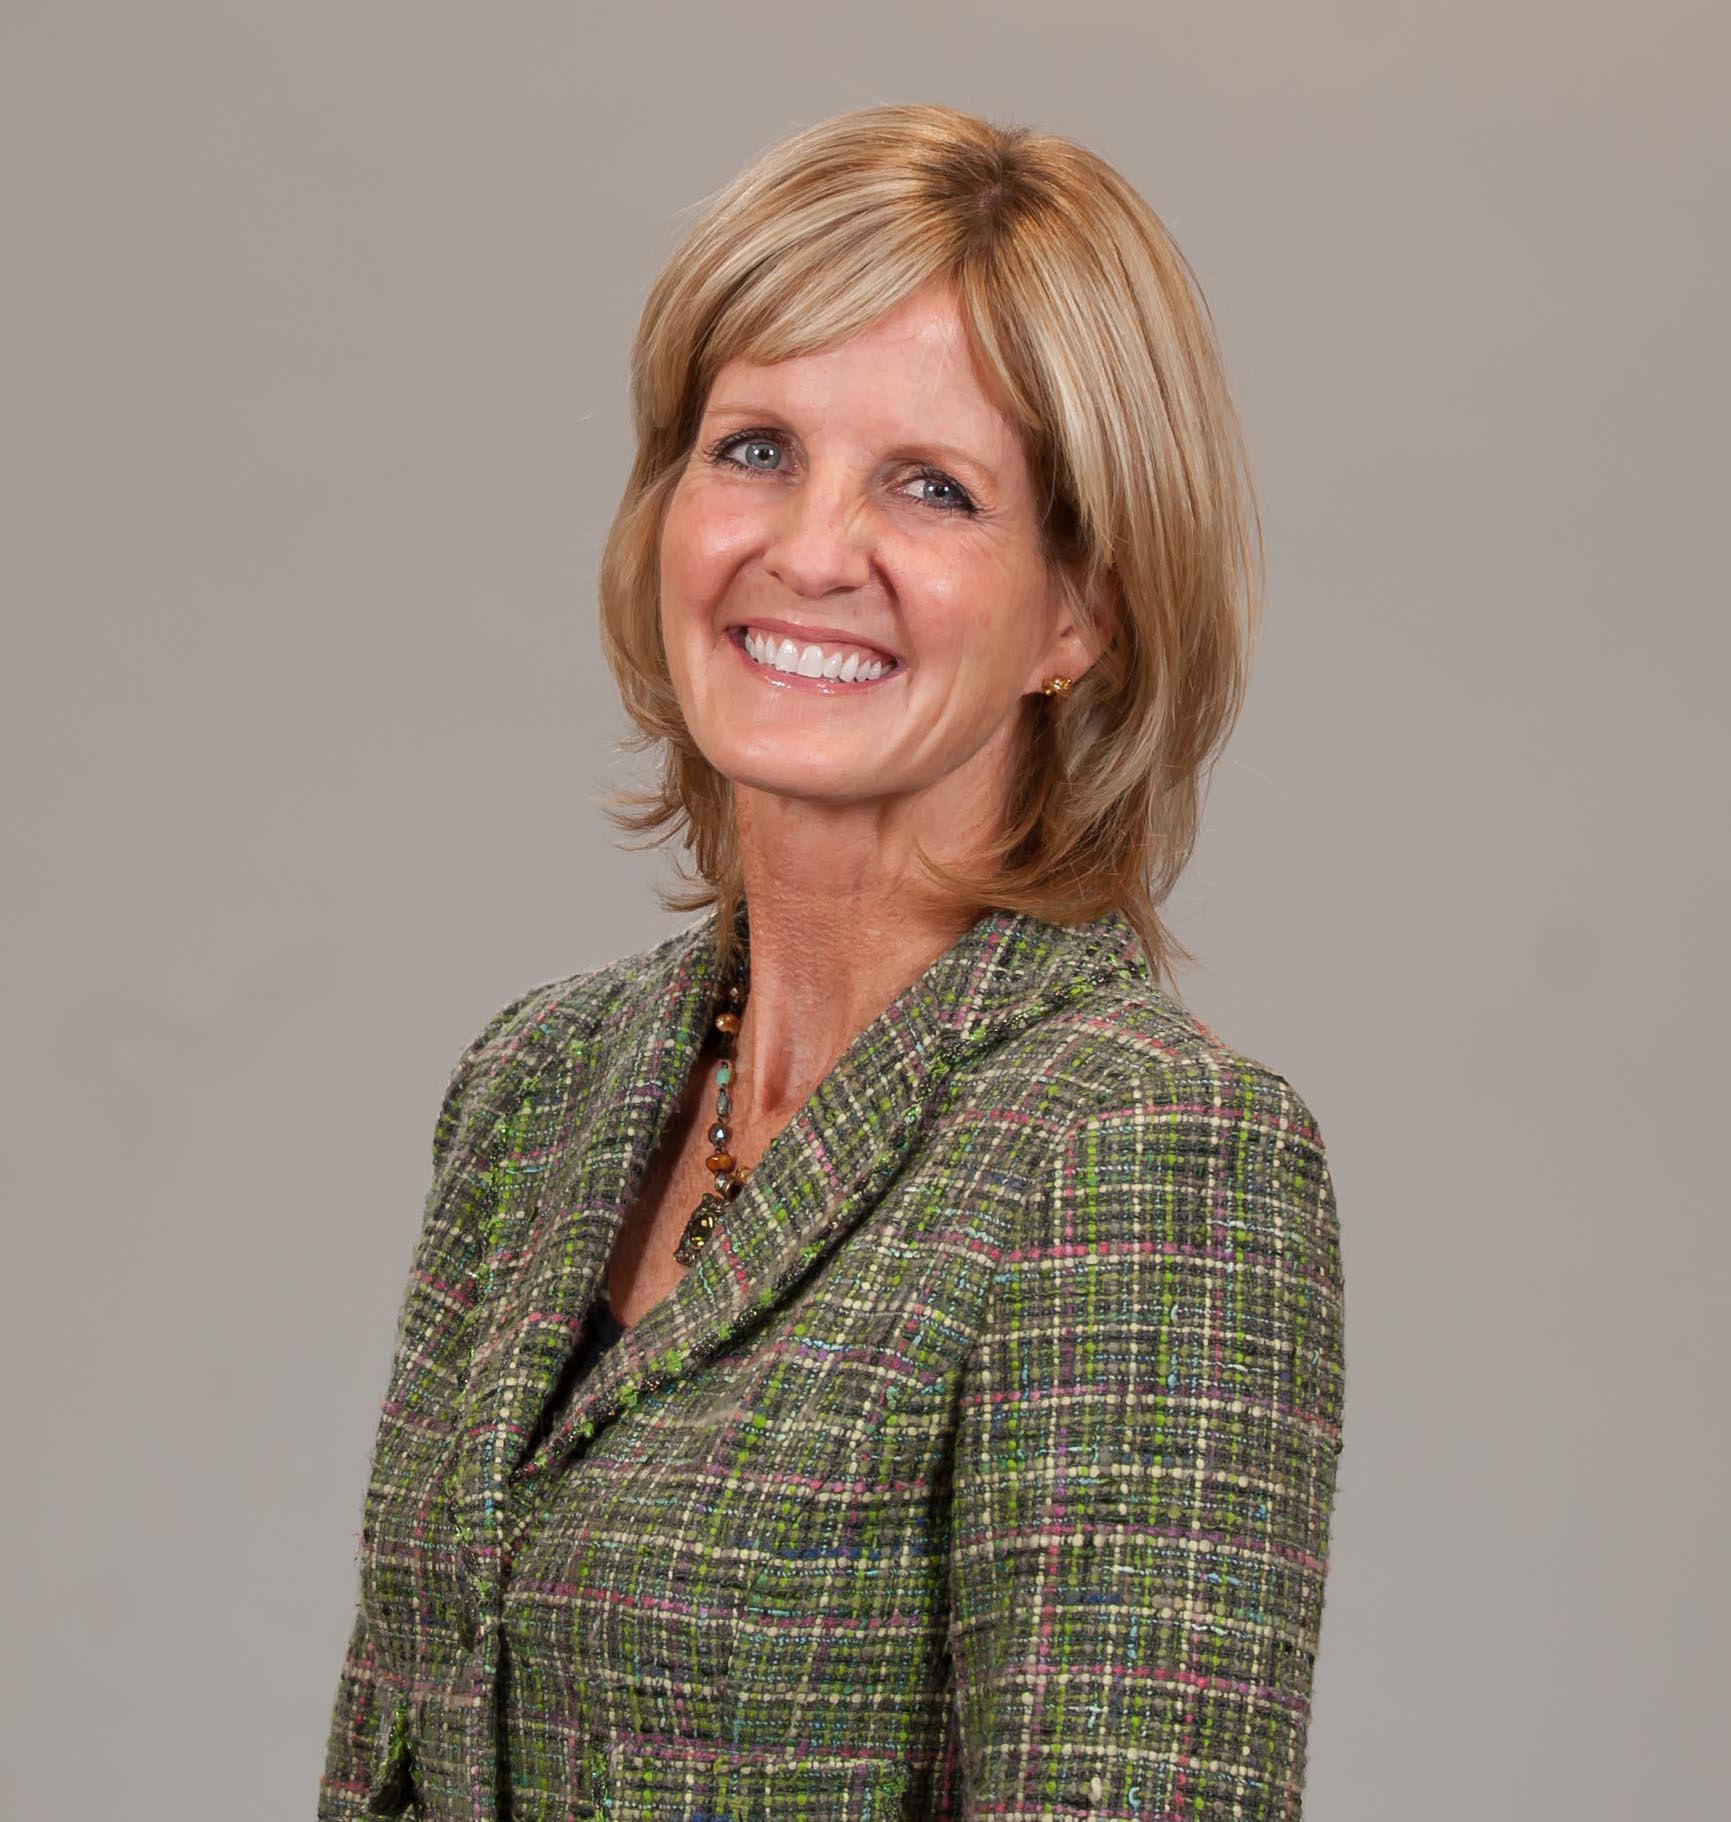 Kathryn Hower, financial advisor Indianapolis IN